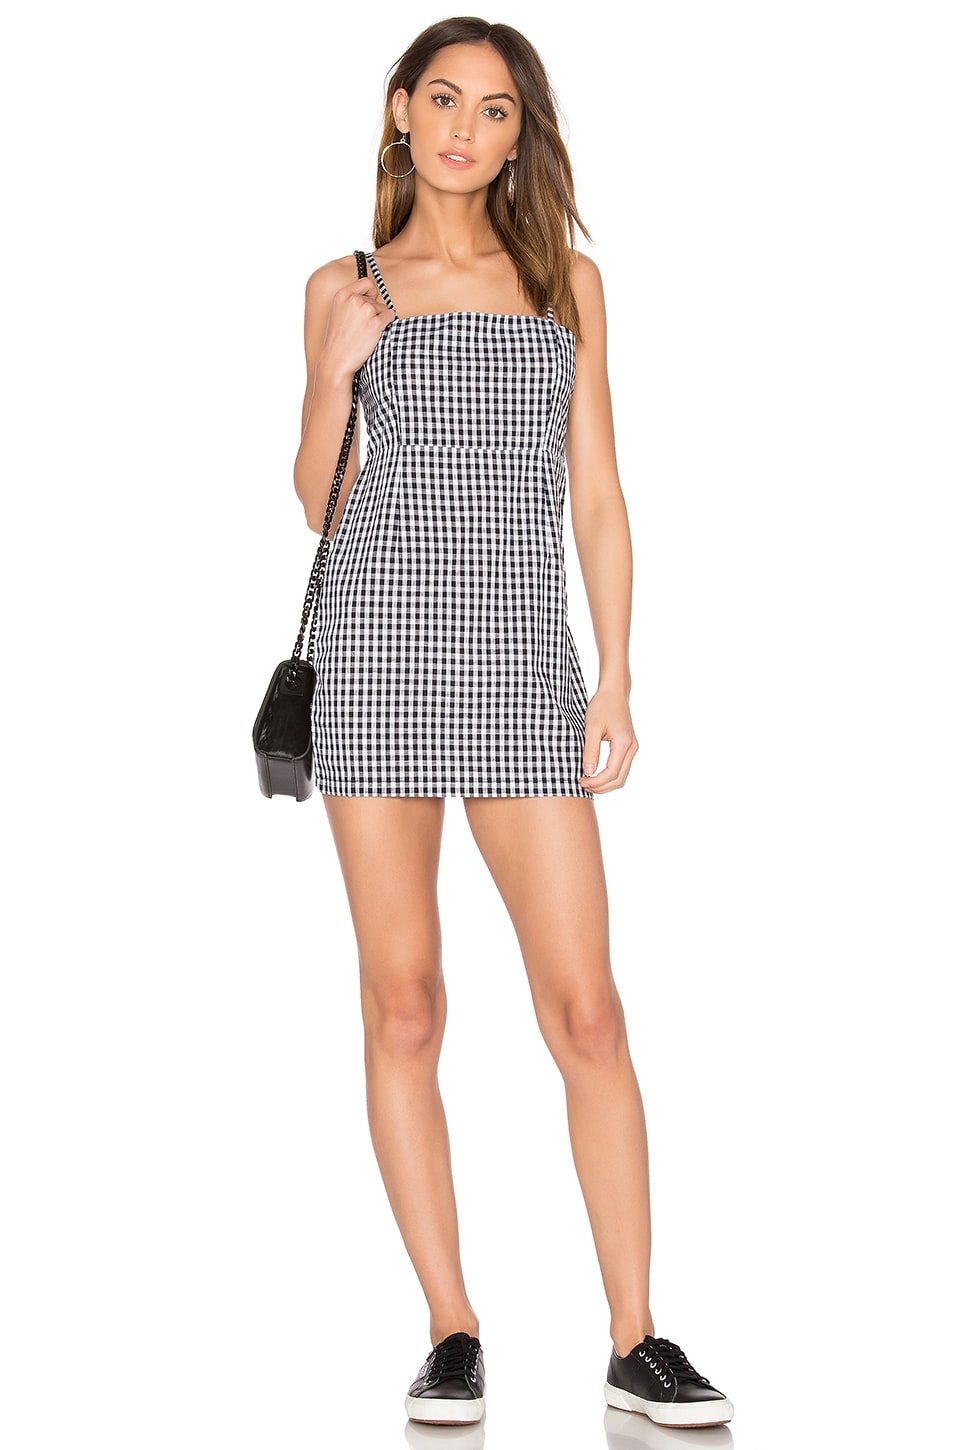 LIONESS Cha Cha Gingham Mini Dress in Black Gingham